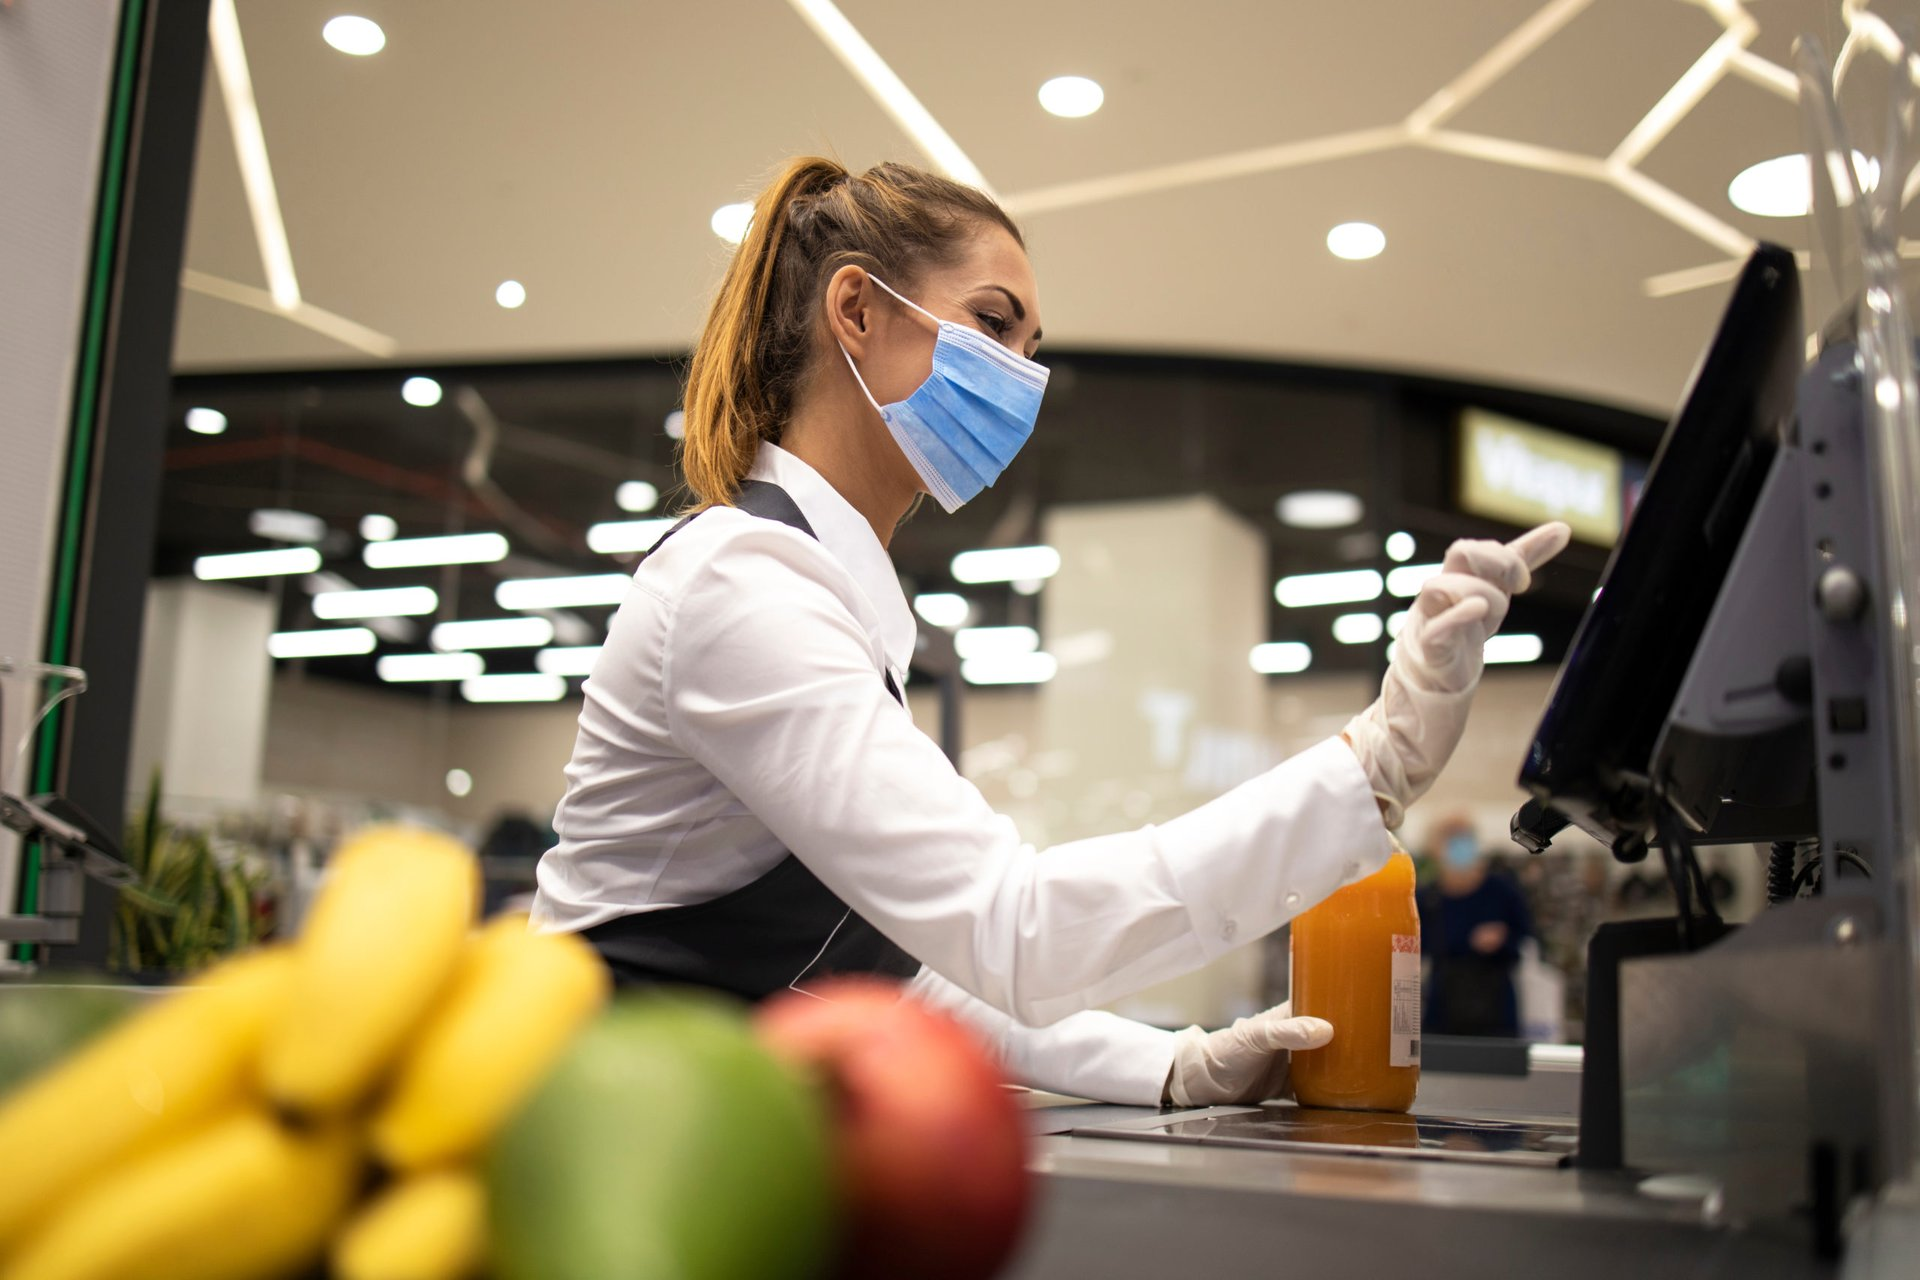 Grocery store cashier working in a mask and gloves